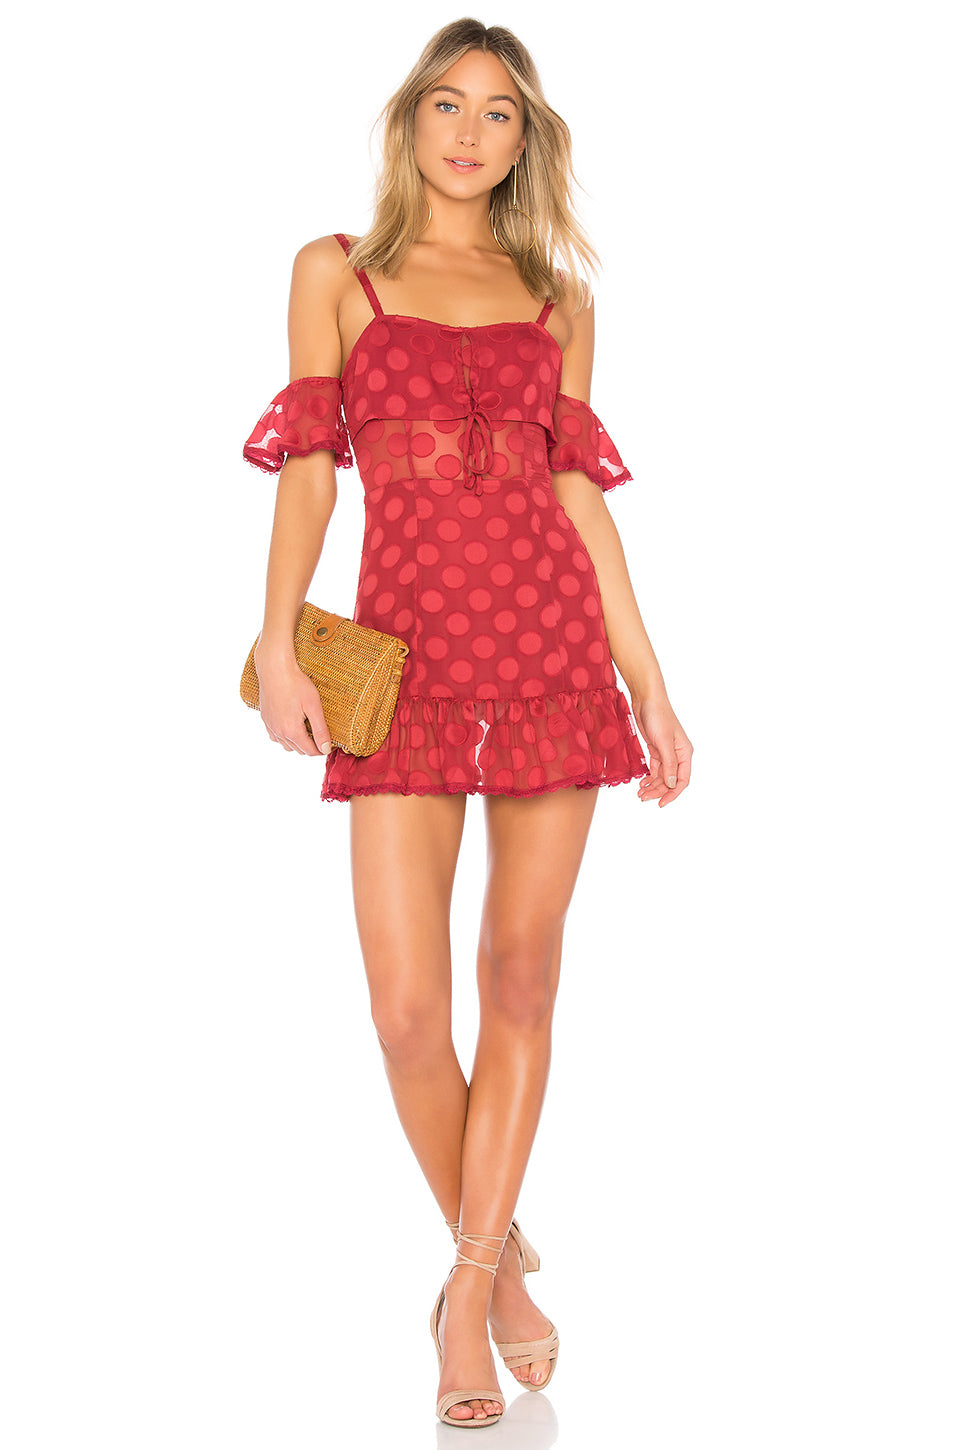 Brinley Dress In Red. Robe Brinley En Rouge. - Size M (also In L,s,xs) Tularosa - Taille M (également À L, S, Xs) Tularosa